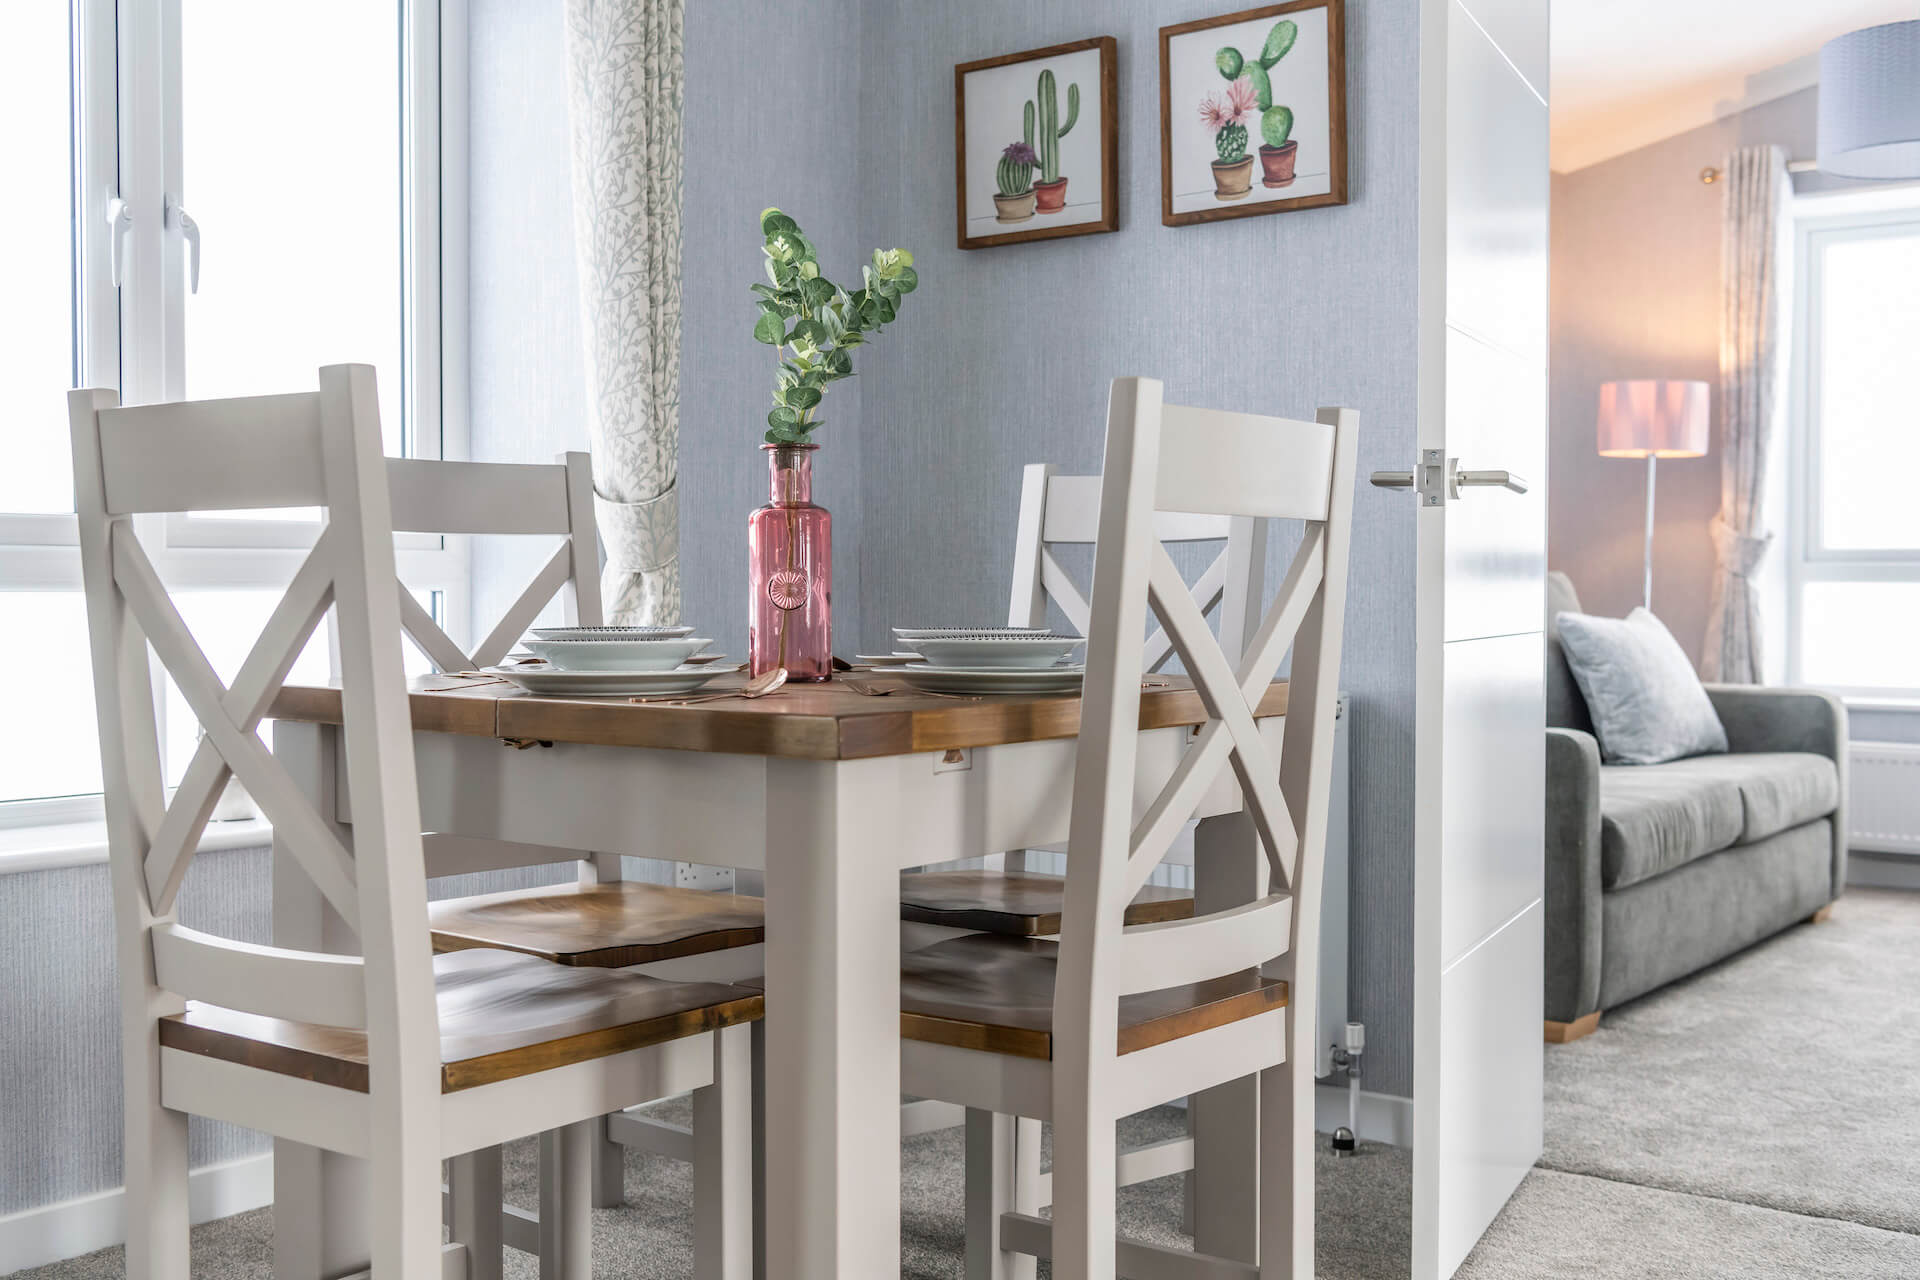 Omar-Image-park-Home-Dining-Area3